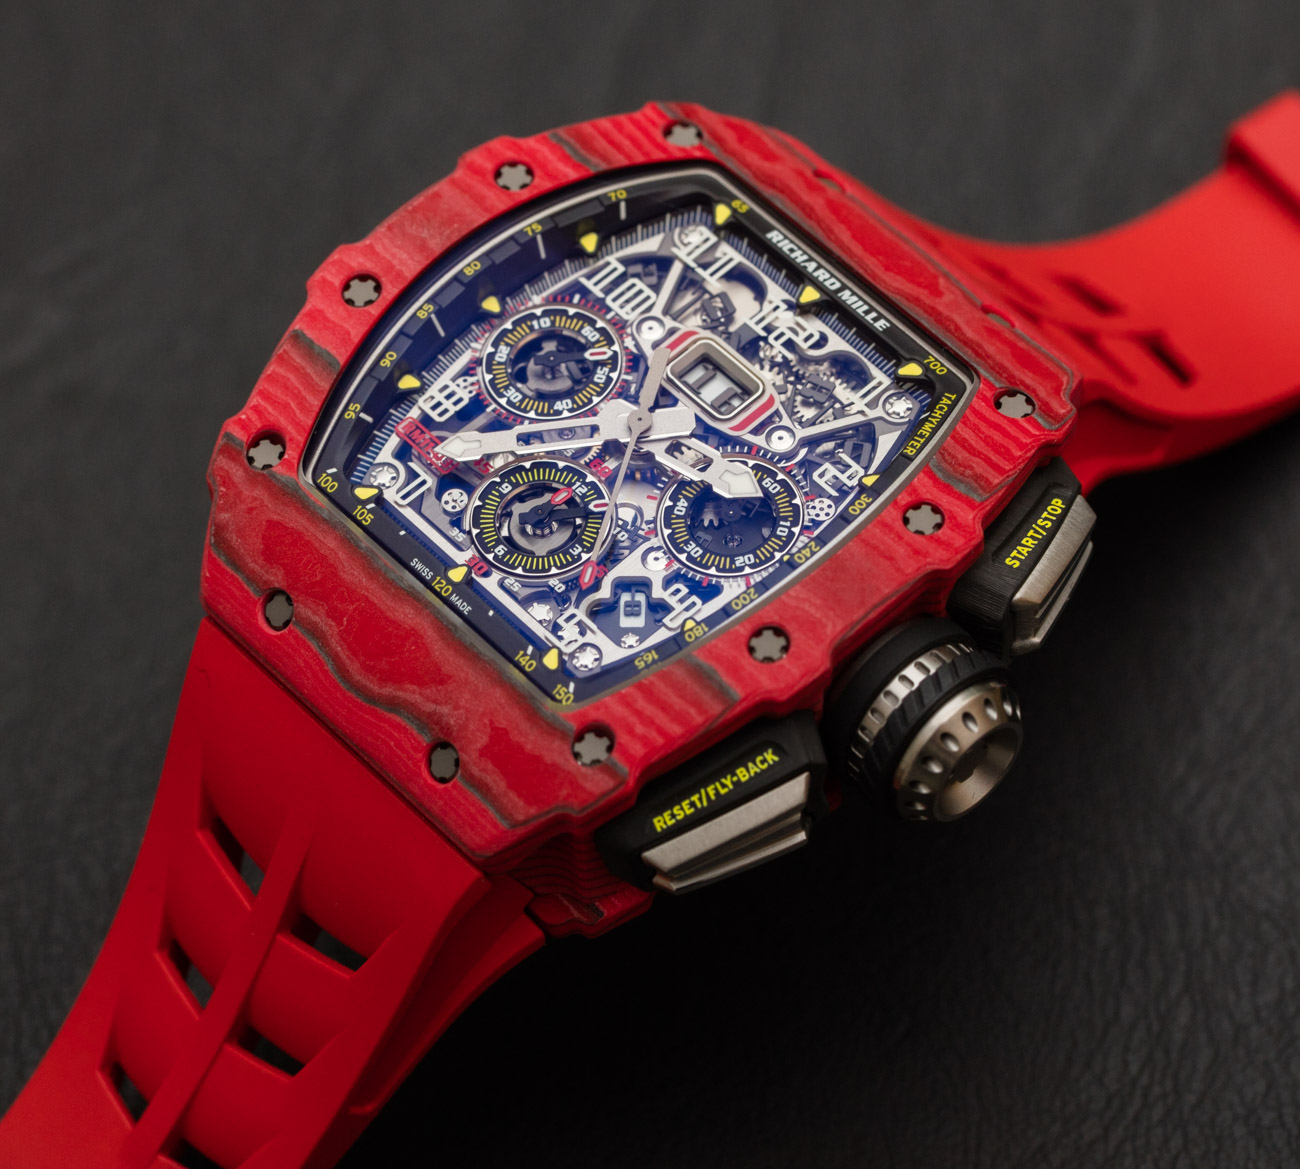 Richard Mille RM 11-03 Automatic Flyback Chronograph Red Quartz FQ TPT